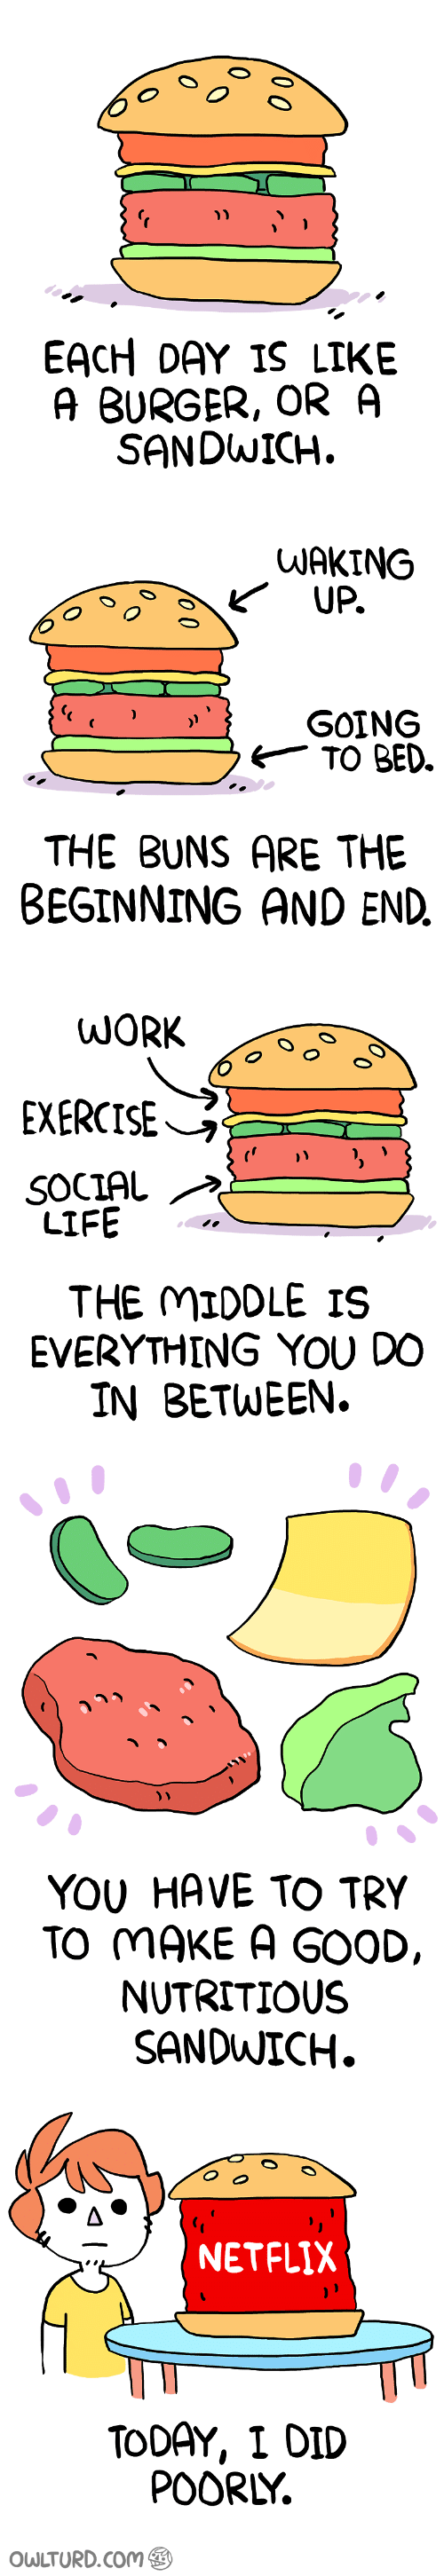 Life, Netflix, and Exercise: EACH DAY IS LIKE  A BURGER, OR A  SANDWICH.   WAKING  GOING  6TO BED.  THE BUNS ARE THE  BEGINNING AND END.   EXERCISE  SOCIAL  LIFE  THE MIDDLE IS  EVERYTHING YOU DO  IN BETWEEN.   YOU HAVE TO TRY  TO MAKE A GOOD,  NUTRITIOUS  SANDWICH.   NETFLIX  TODAY, I DID  POORLY.  OWLTURD.Com